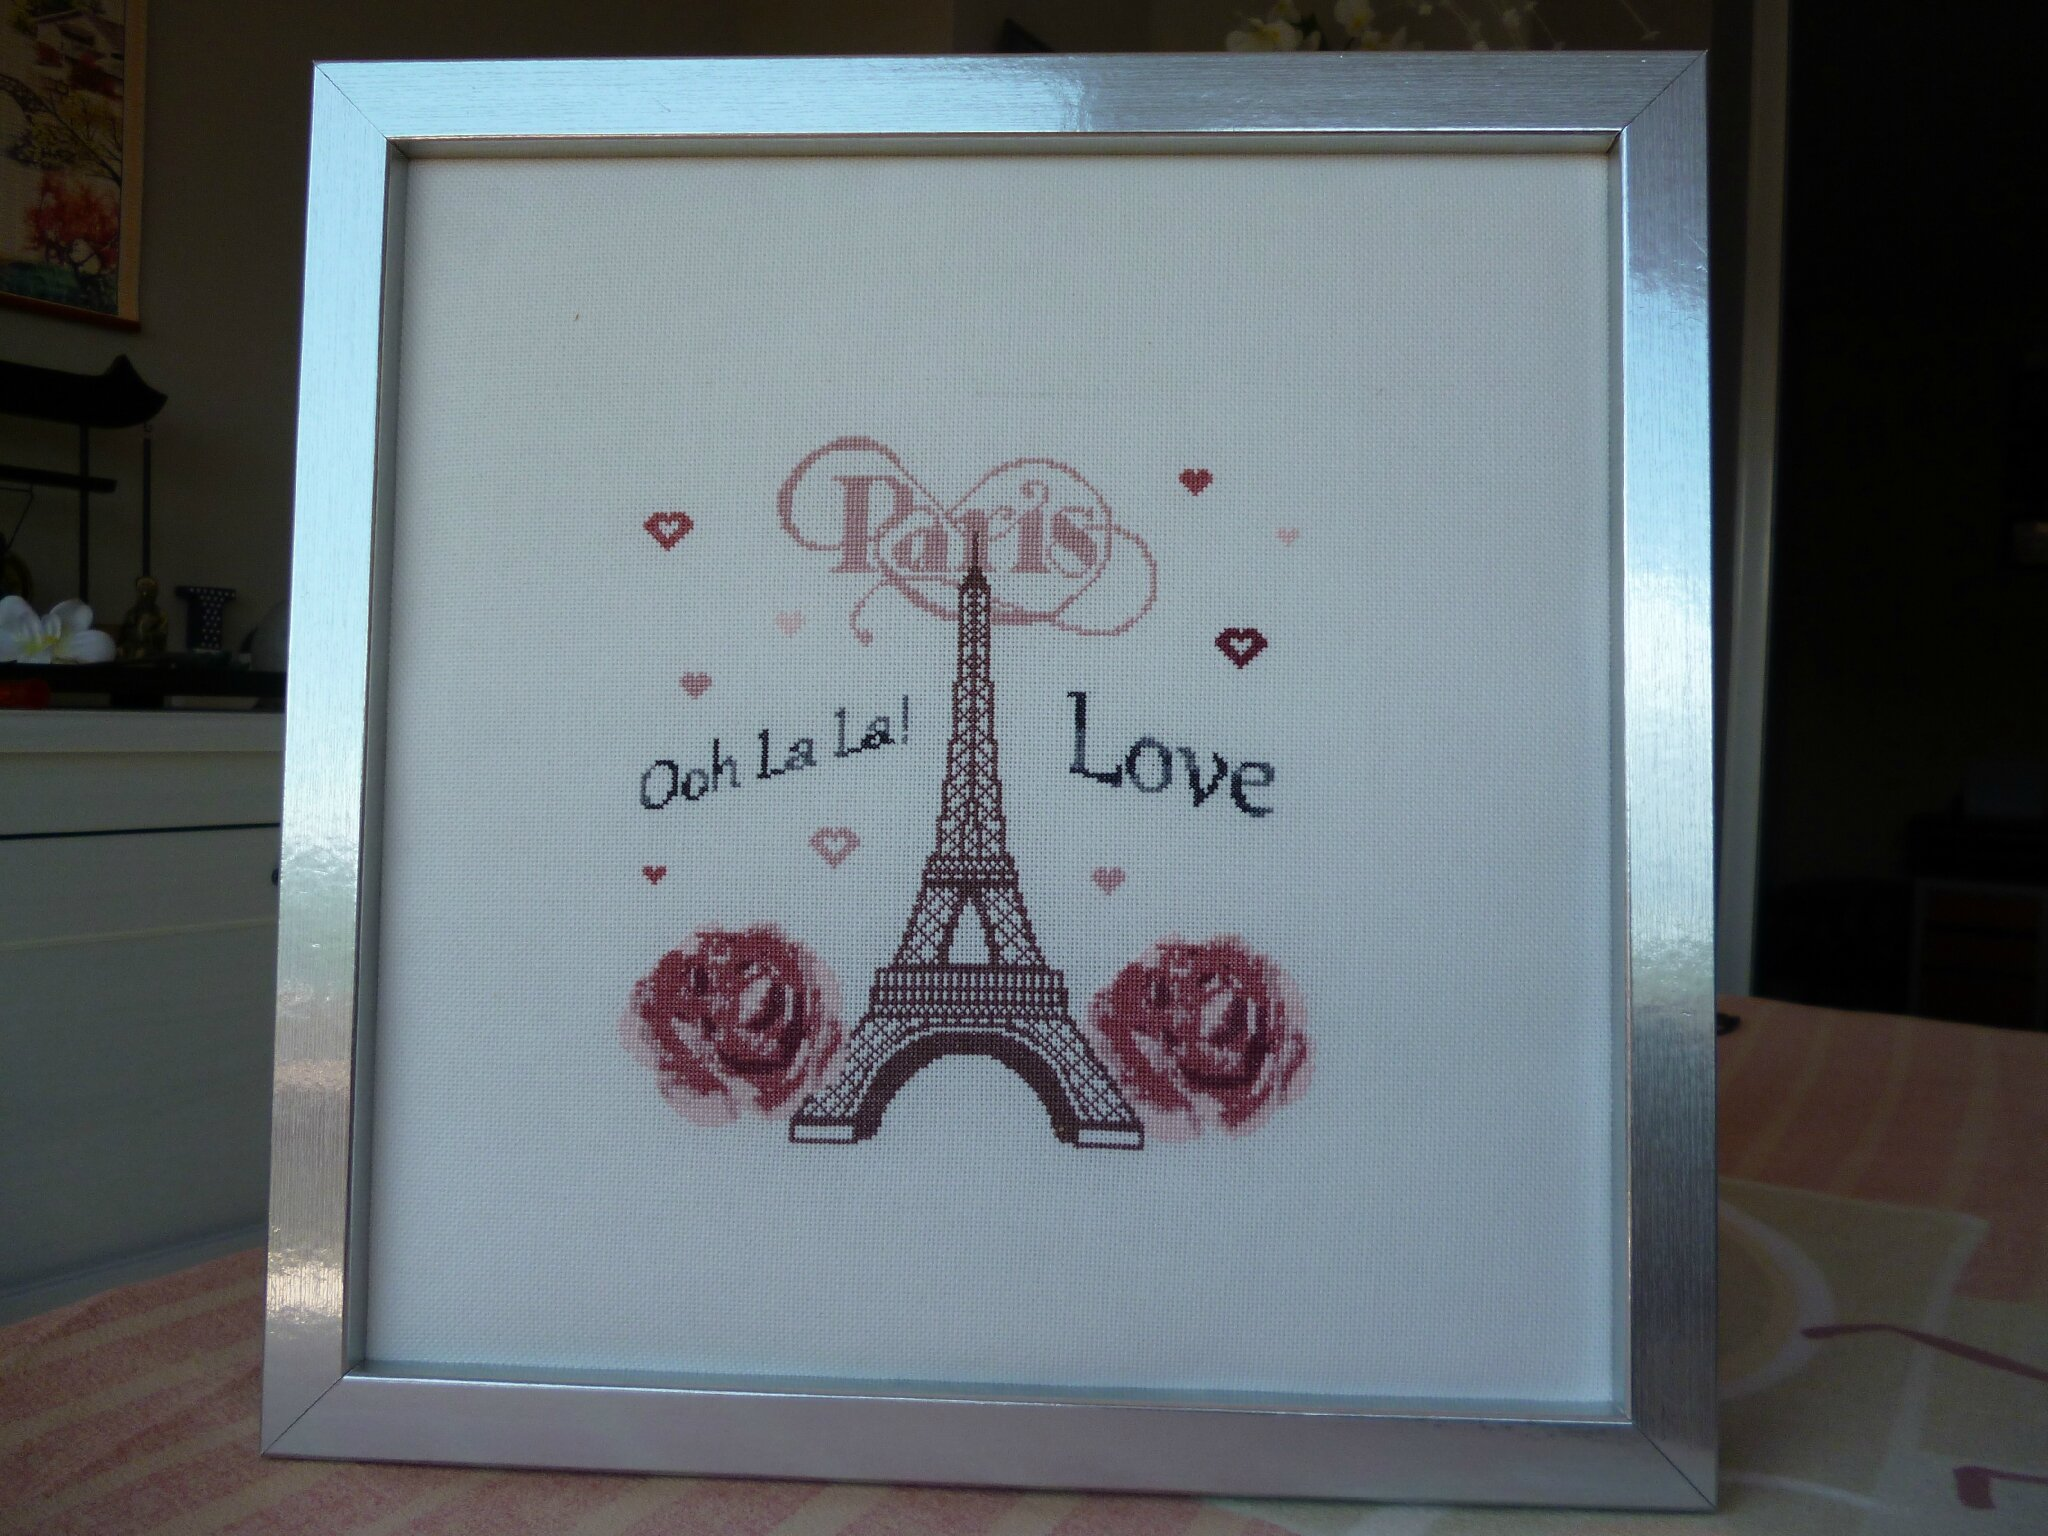 Oh la la I love Paris